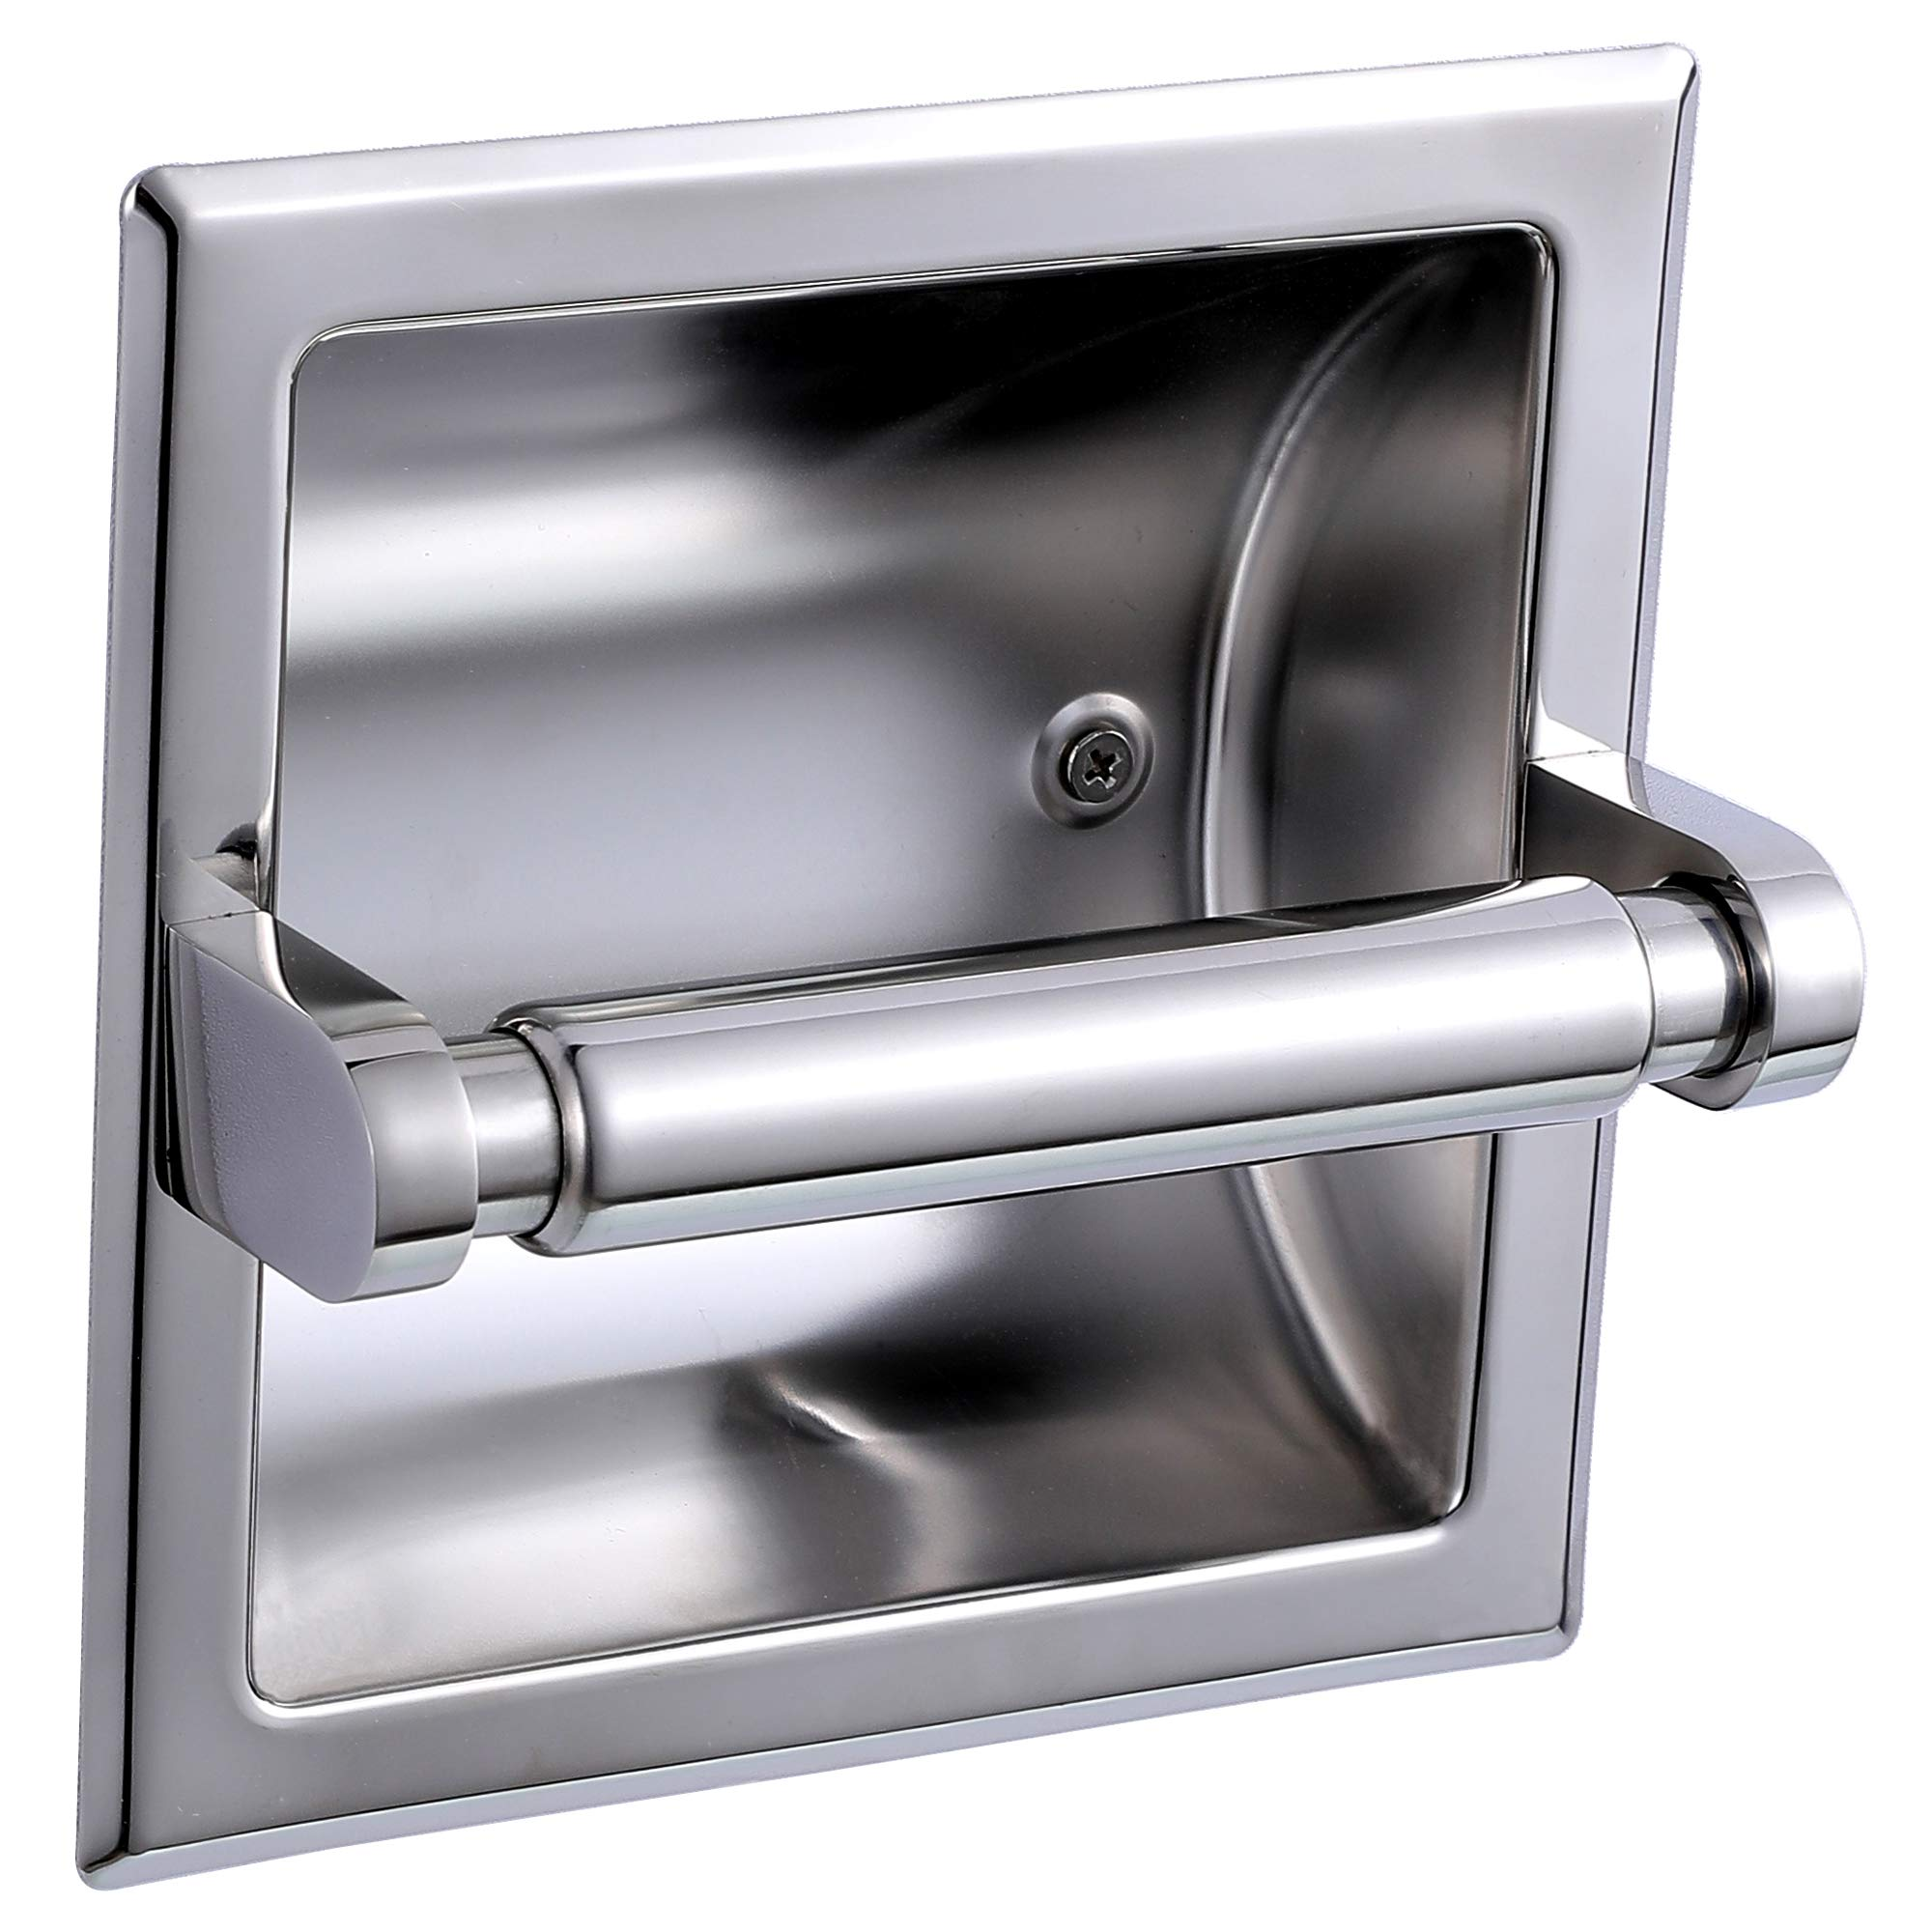 JiangPu Recessed Toilet Paper Holder Polished Chrome Tissue Paper Holder for Bathroom Wall Mount toilet dispenser holder All Stainless Steel Construction - Rear Mounting Bracket Included